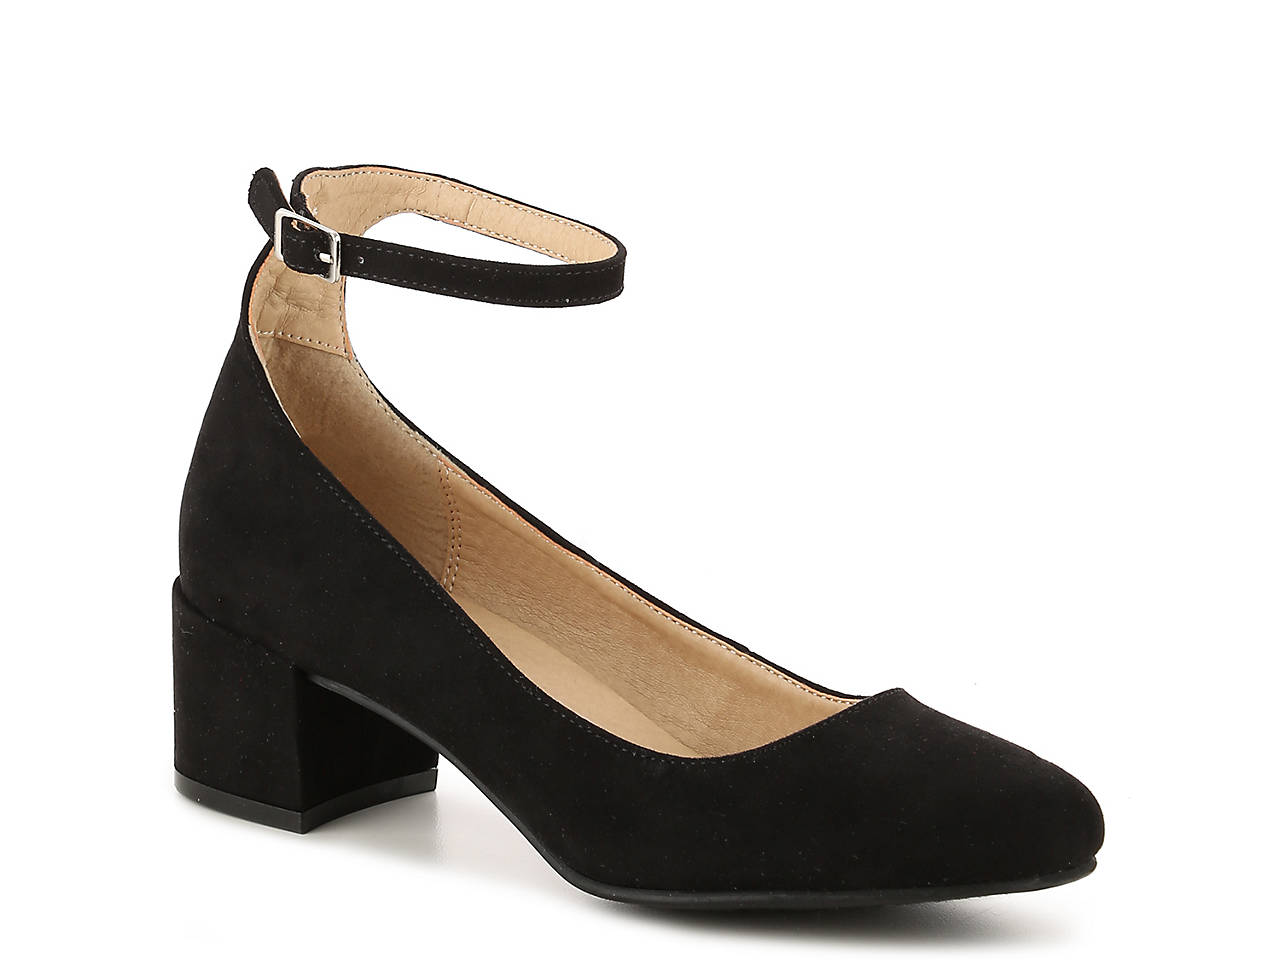 d7fc2a736d7 Chinese Laundry Mabel Pump Women s Shoes